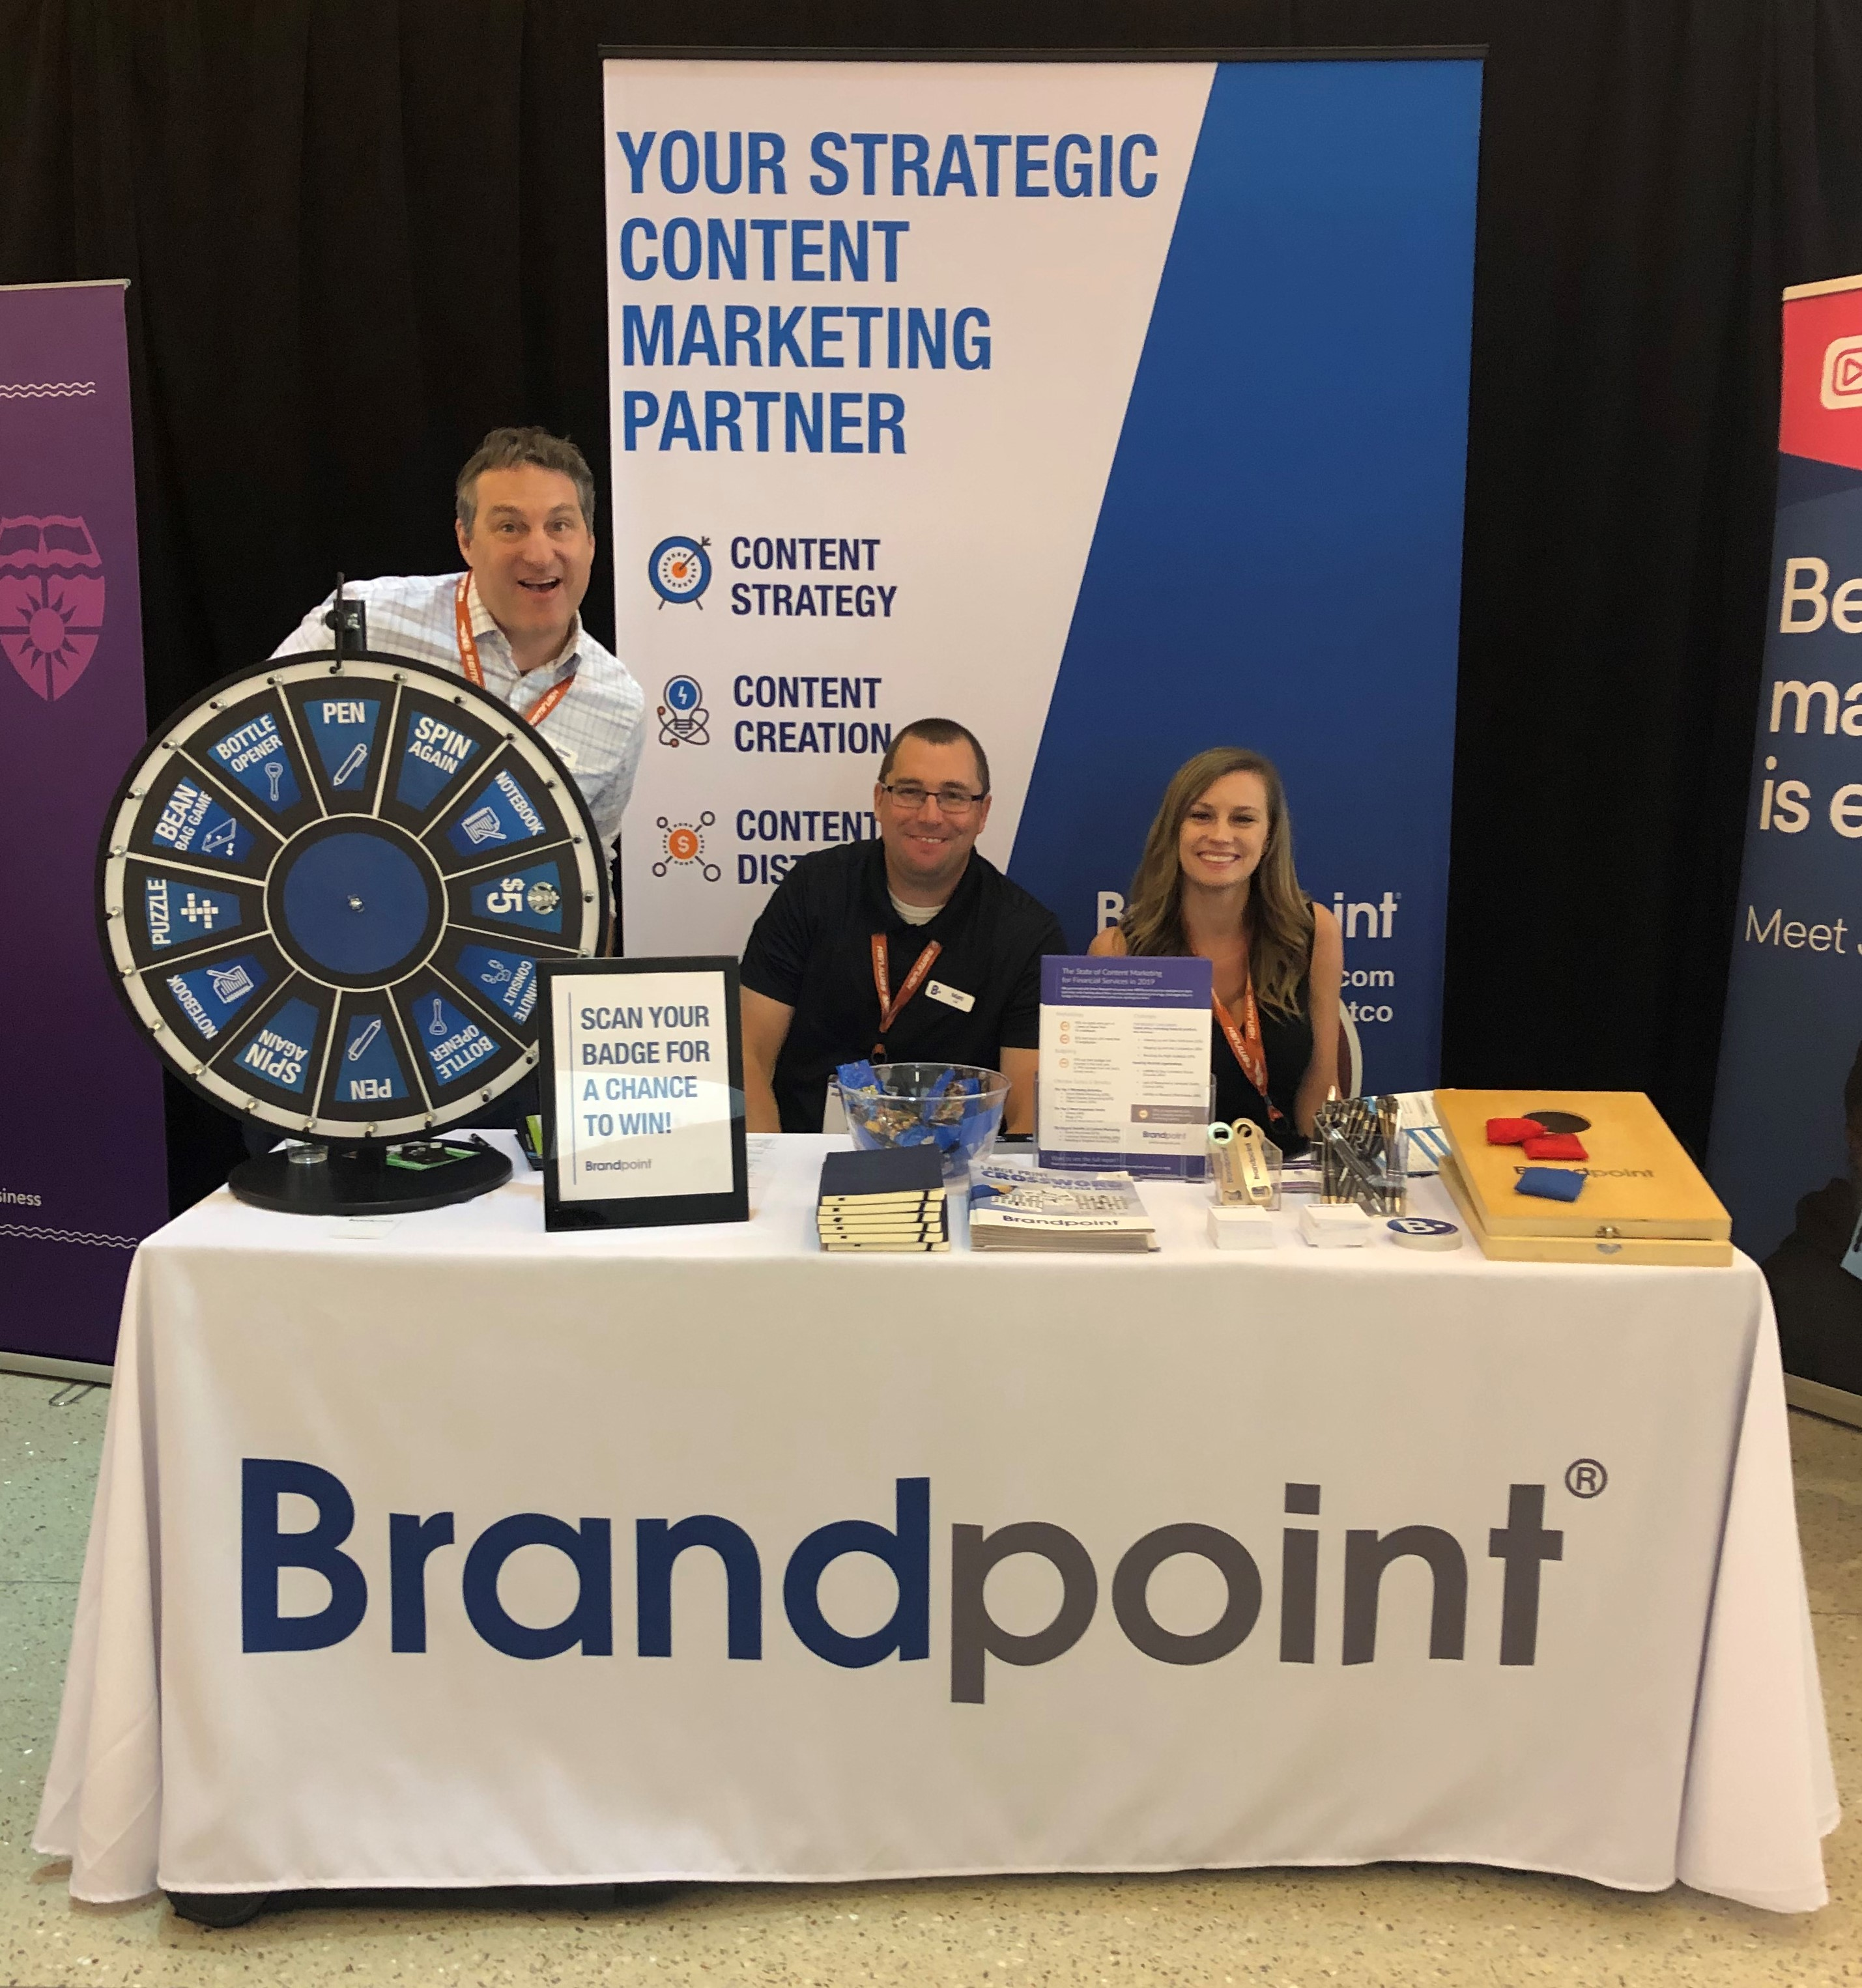 minneapolis content marketing agency brandpoint